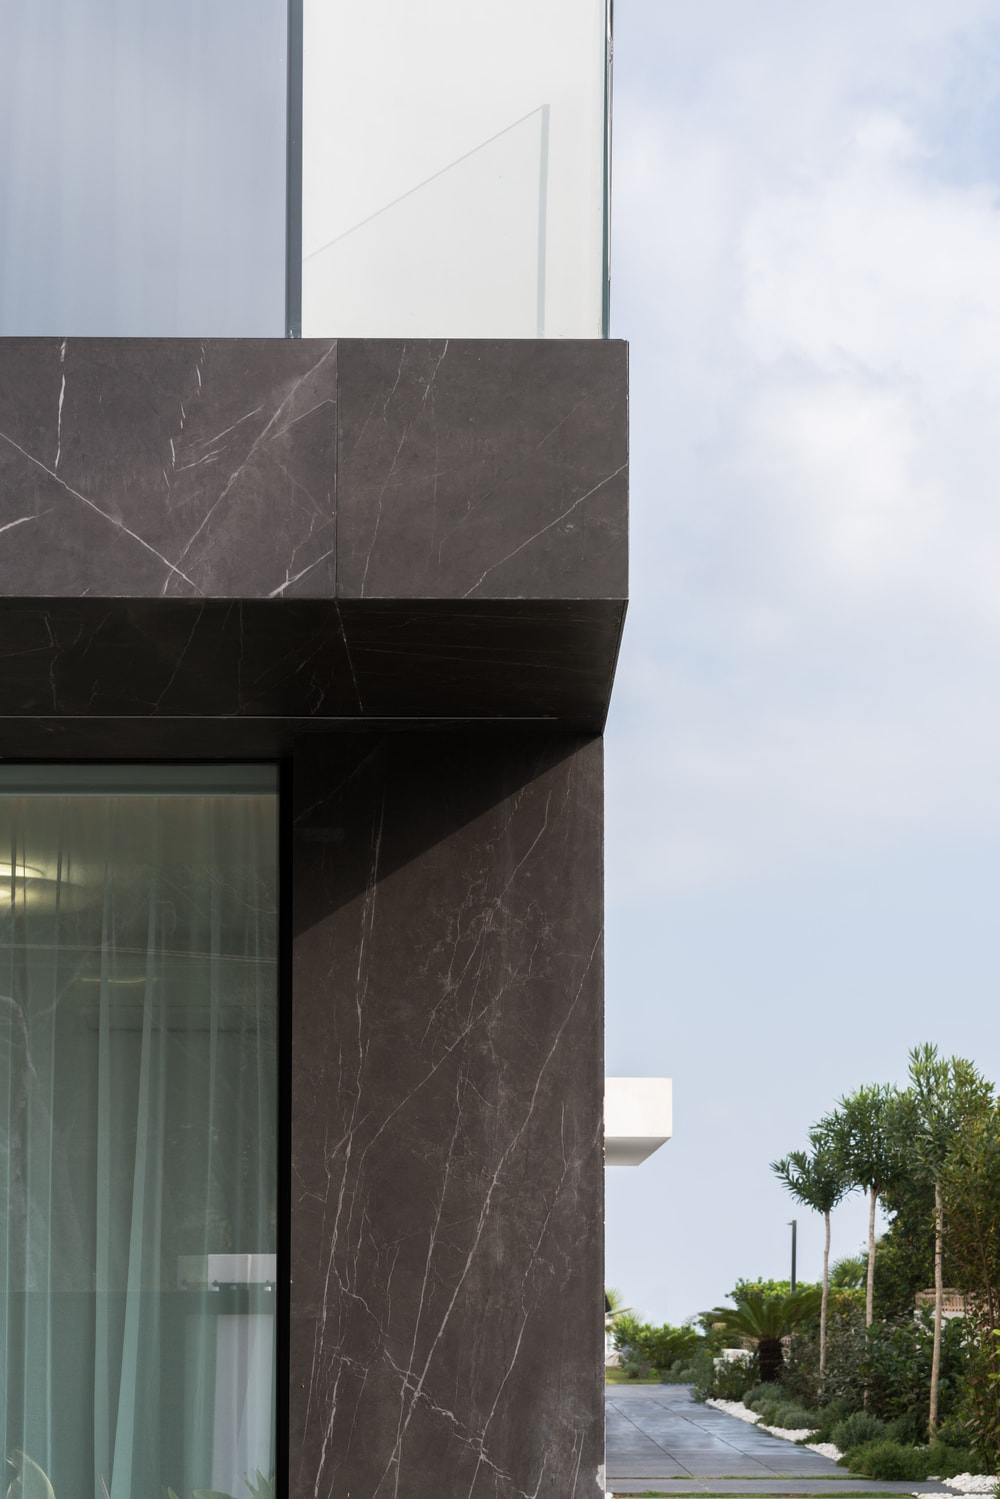 This close inspection of the exterior walls features the lovely pairing of this sophisticated dark material with the glass walls.